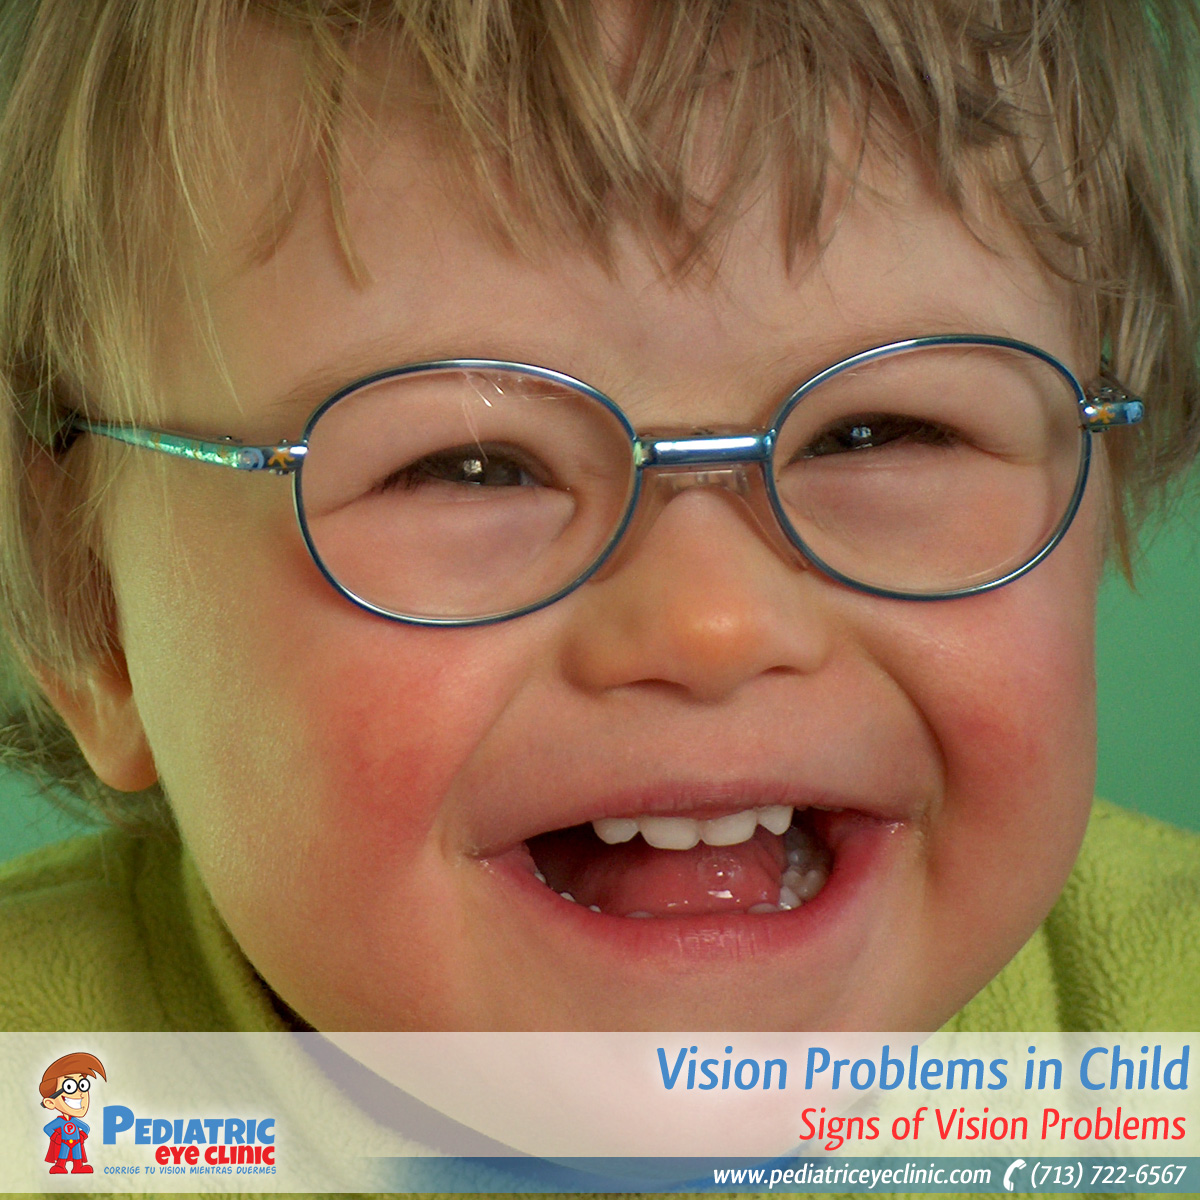 09-vision-problems-in-child